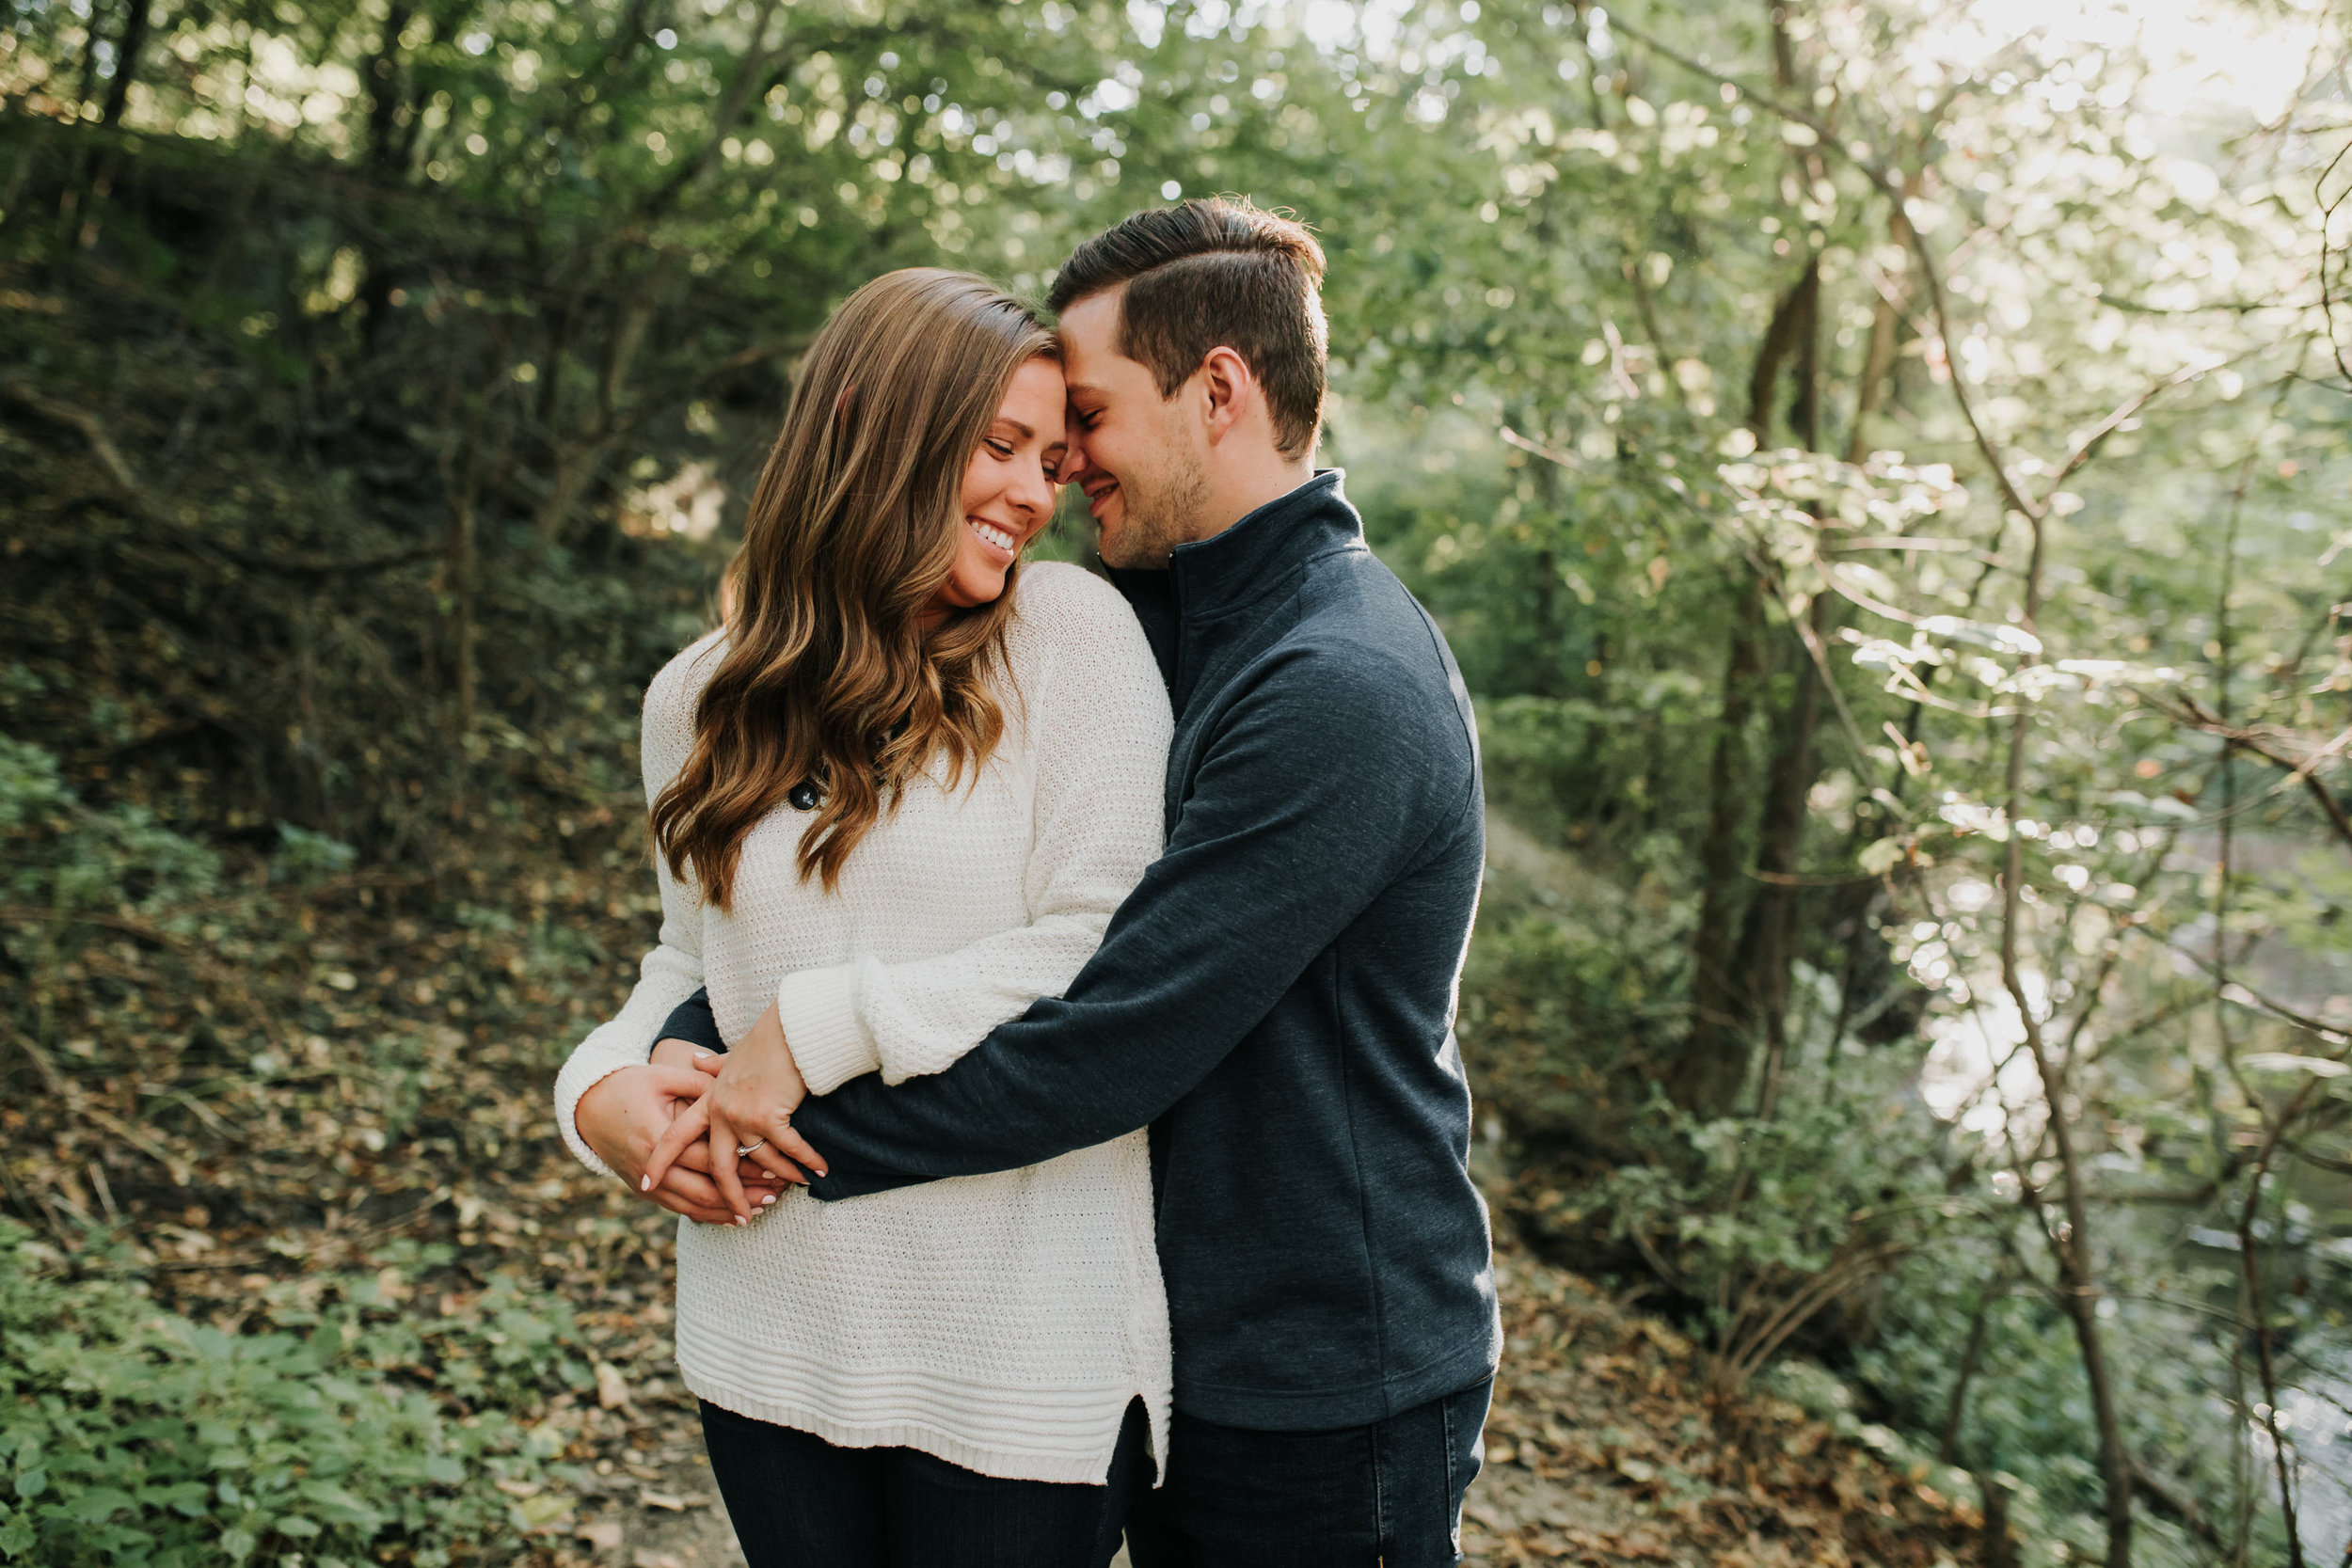 Michelle & Sam - Engaged - Nathaniel Jensen Photography - Omaha Nebraska Wedding Photograper - Omaha Nebraska Engagement Session-21.jpg